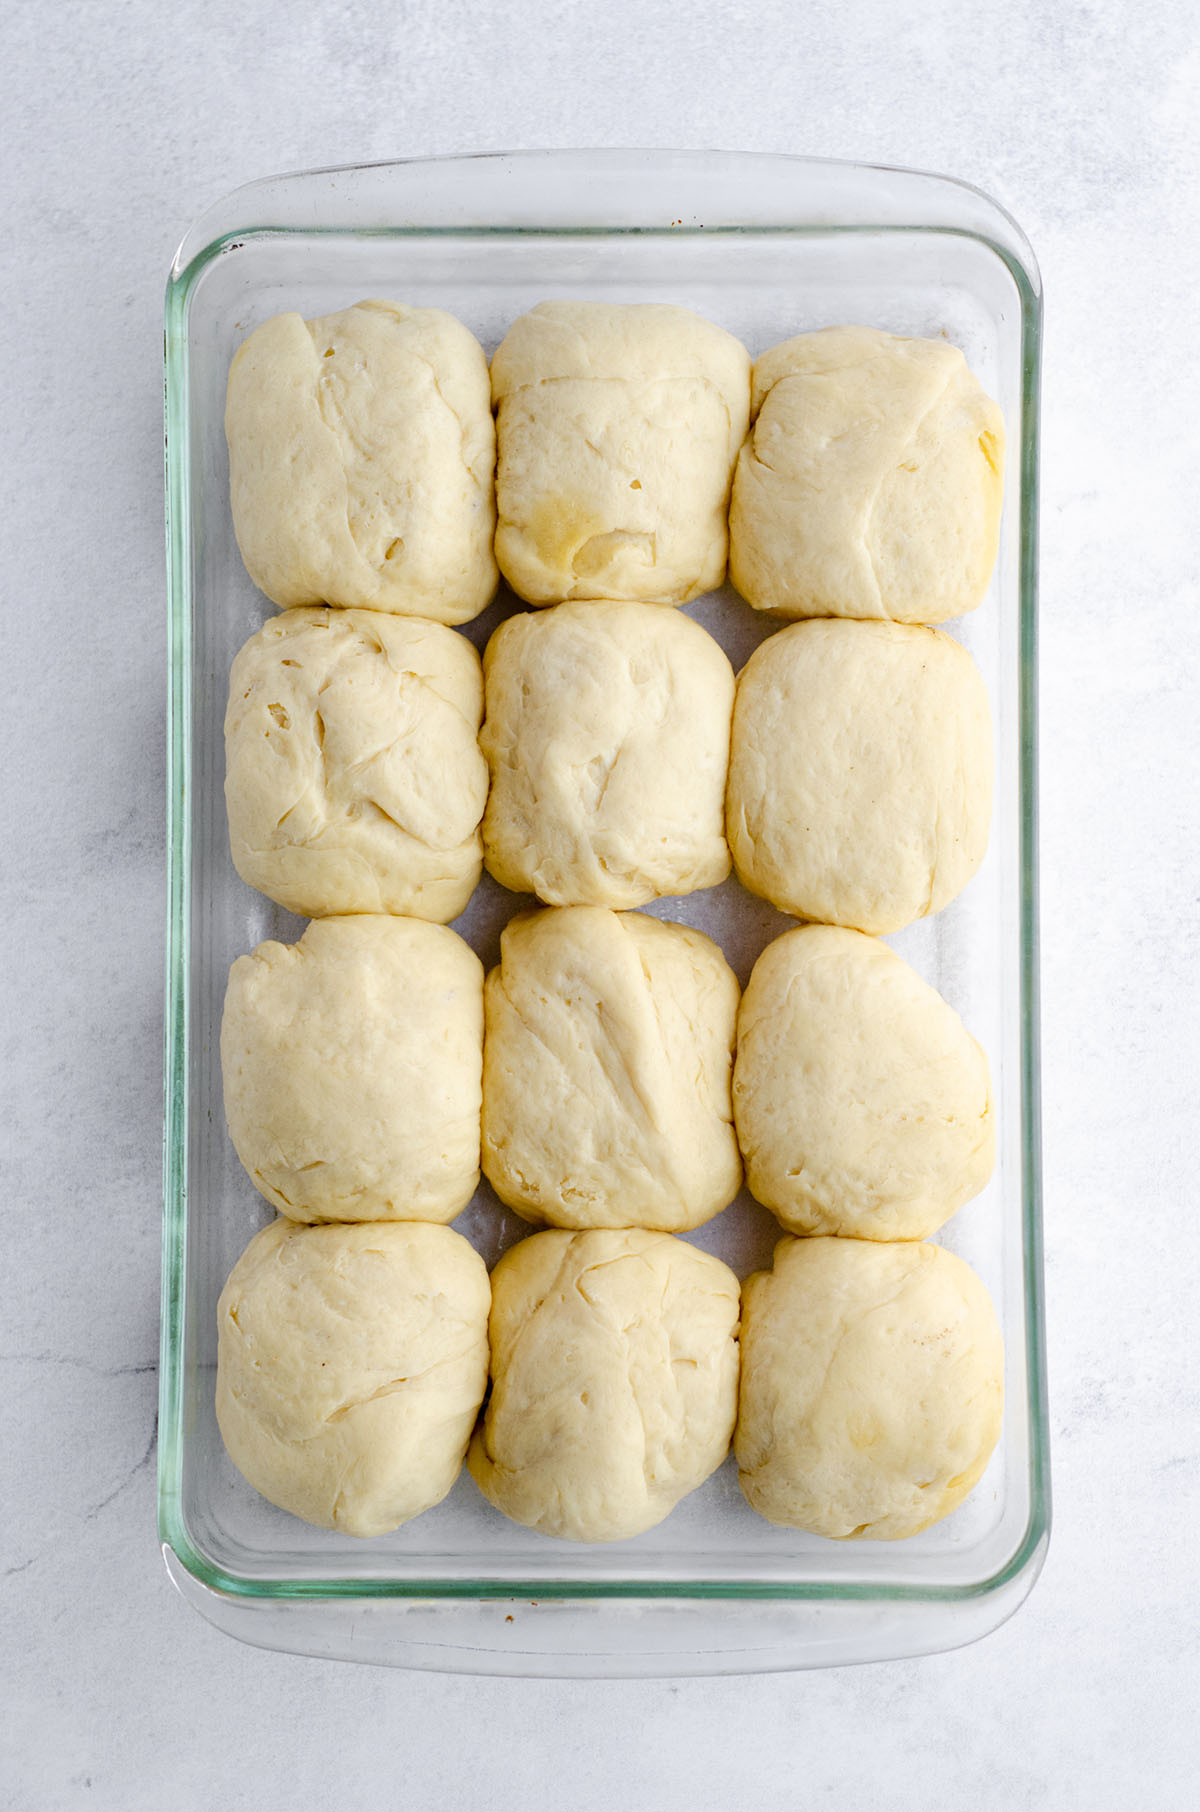 easy yeast roll dough in a glass baking dish ready to rise